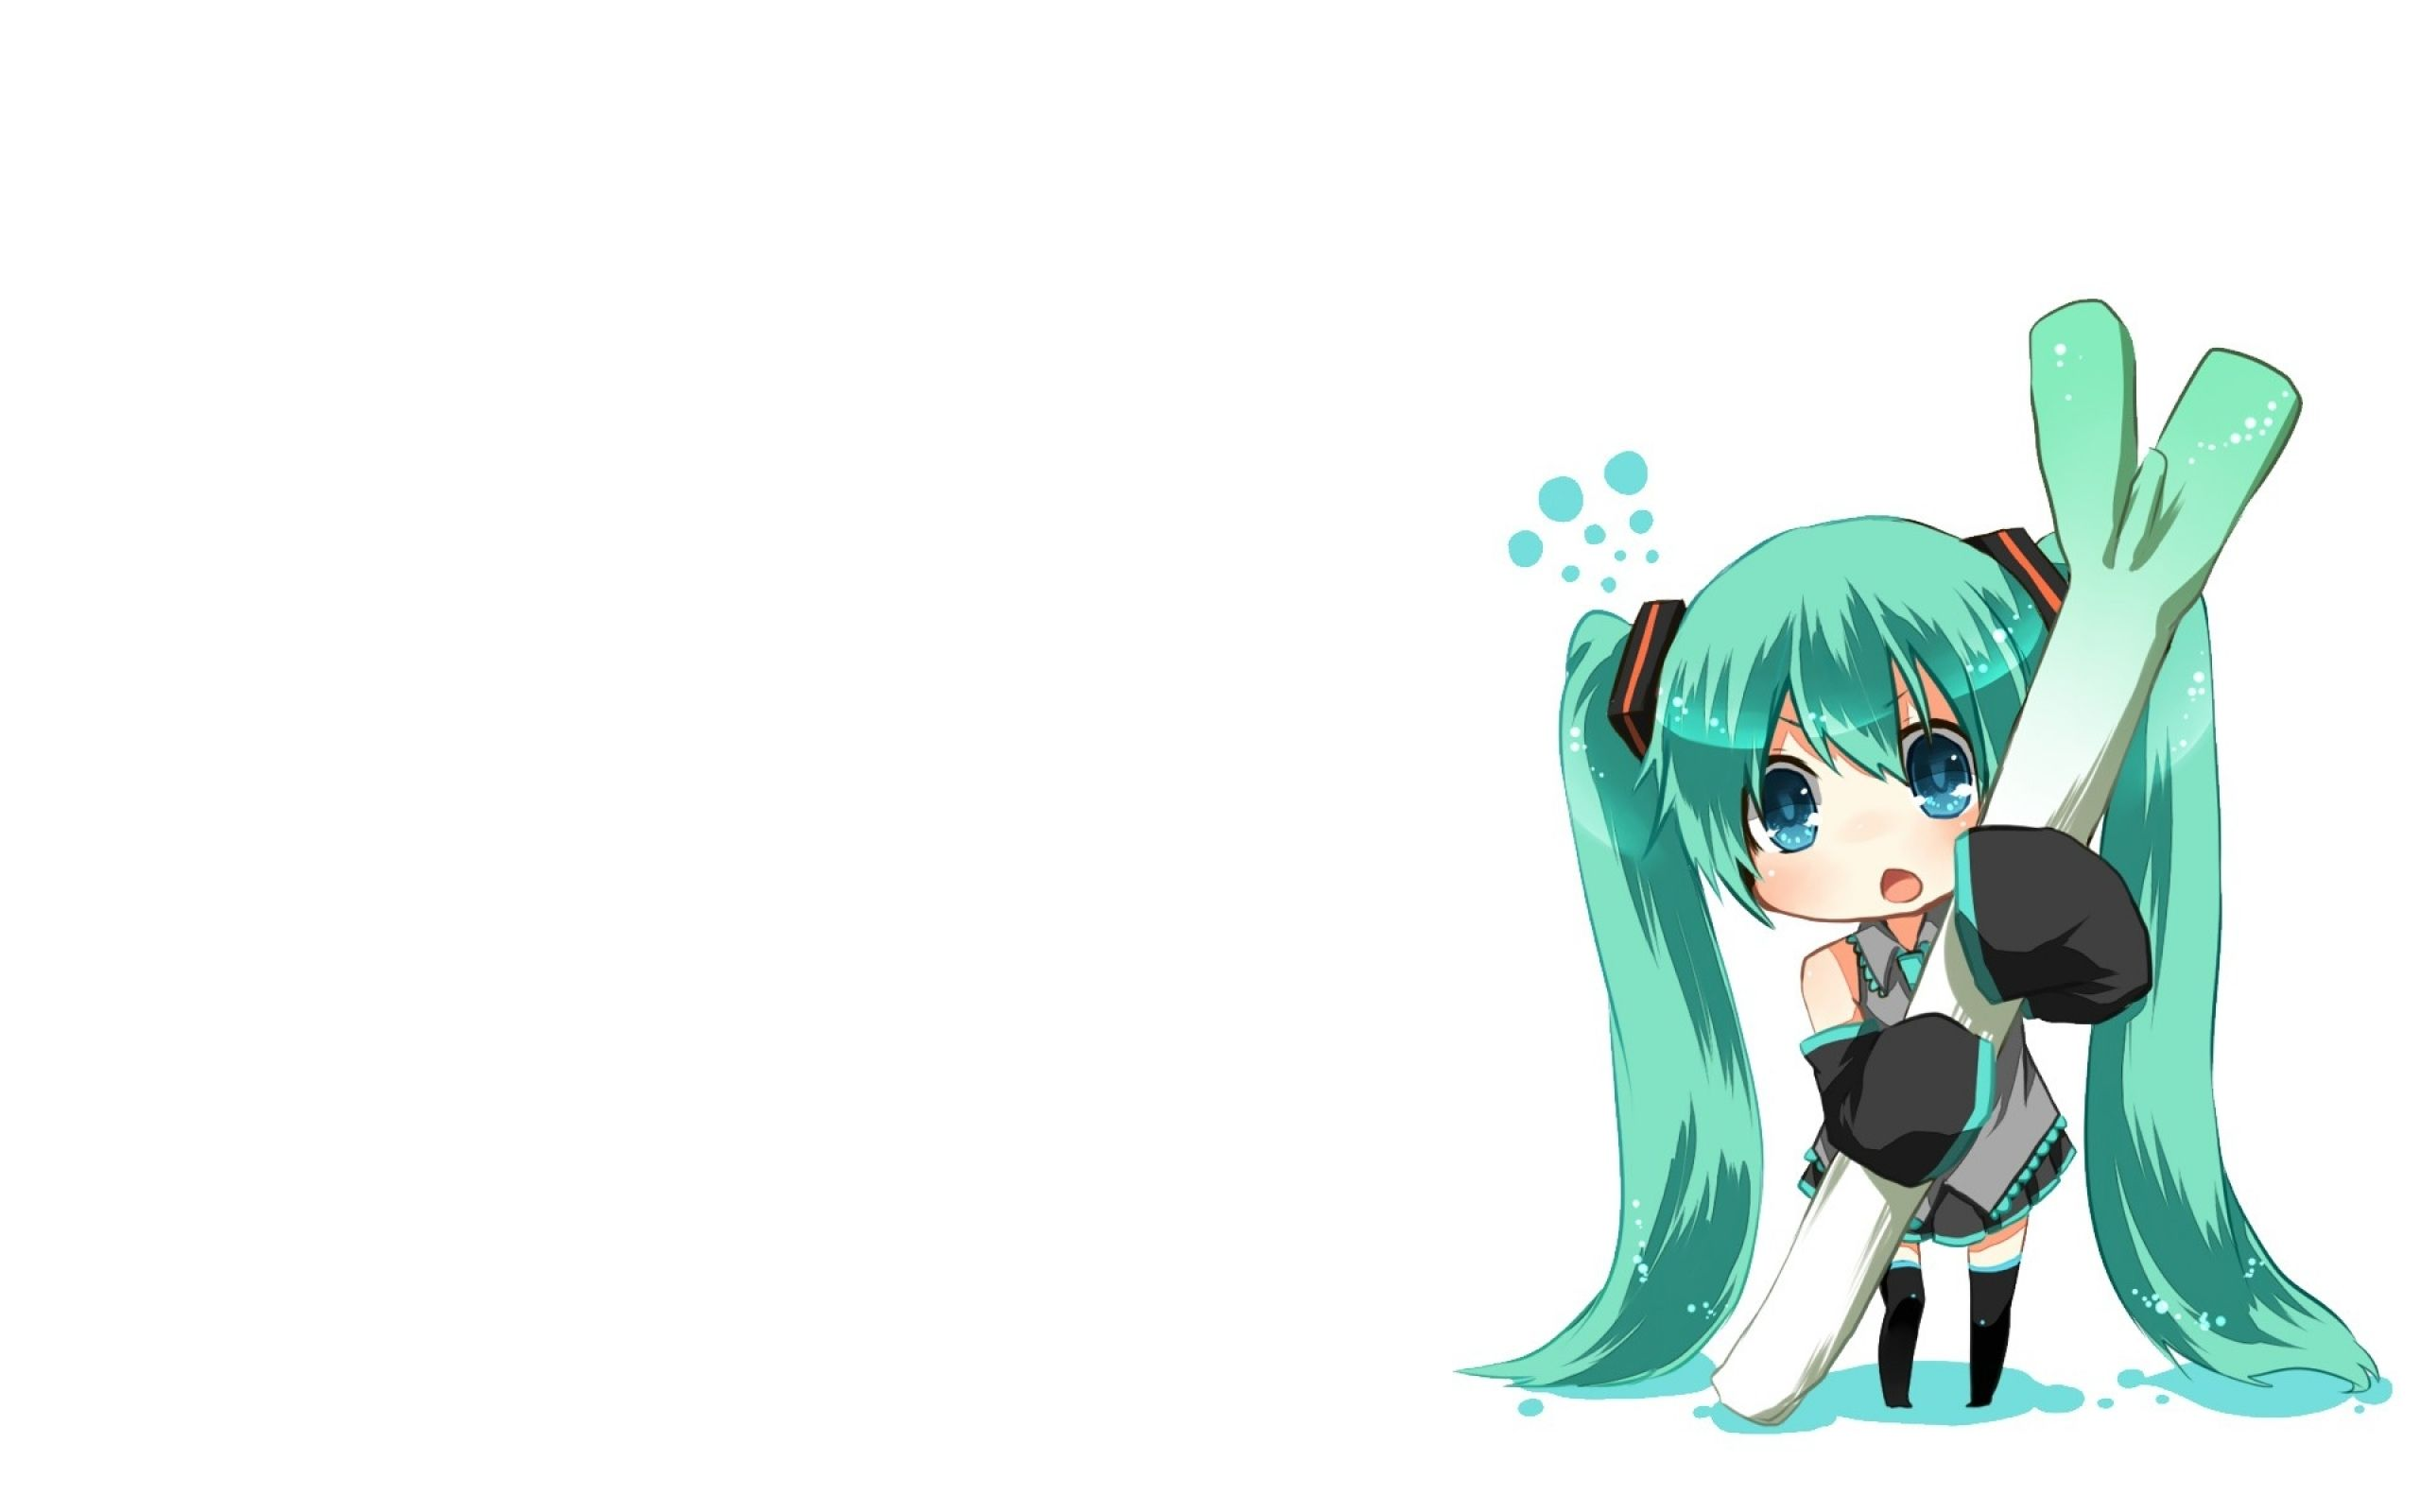 1600x900 Free Anime Live Wallpaper For Android This Is A Cute Chibi Bleach